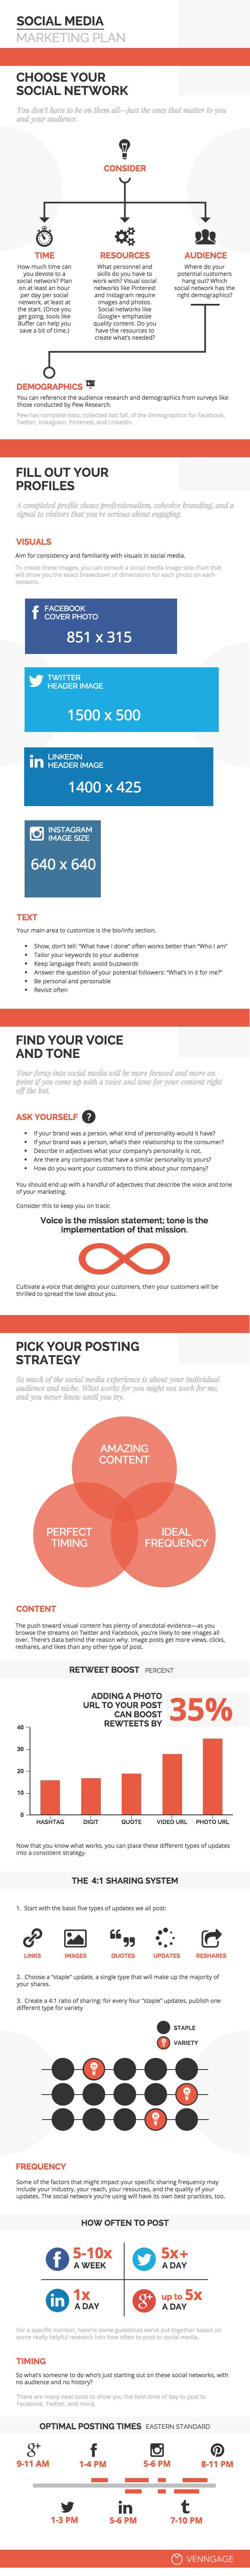 How to create a social media marketing plan #SocialMedia #Marketing #Infographic - more info on www.facebook.com/EssencetoSuccess